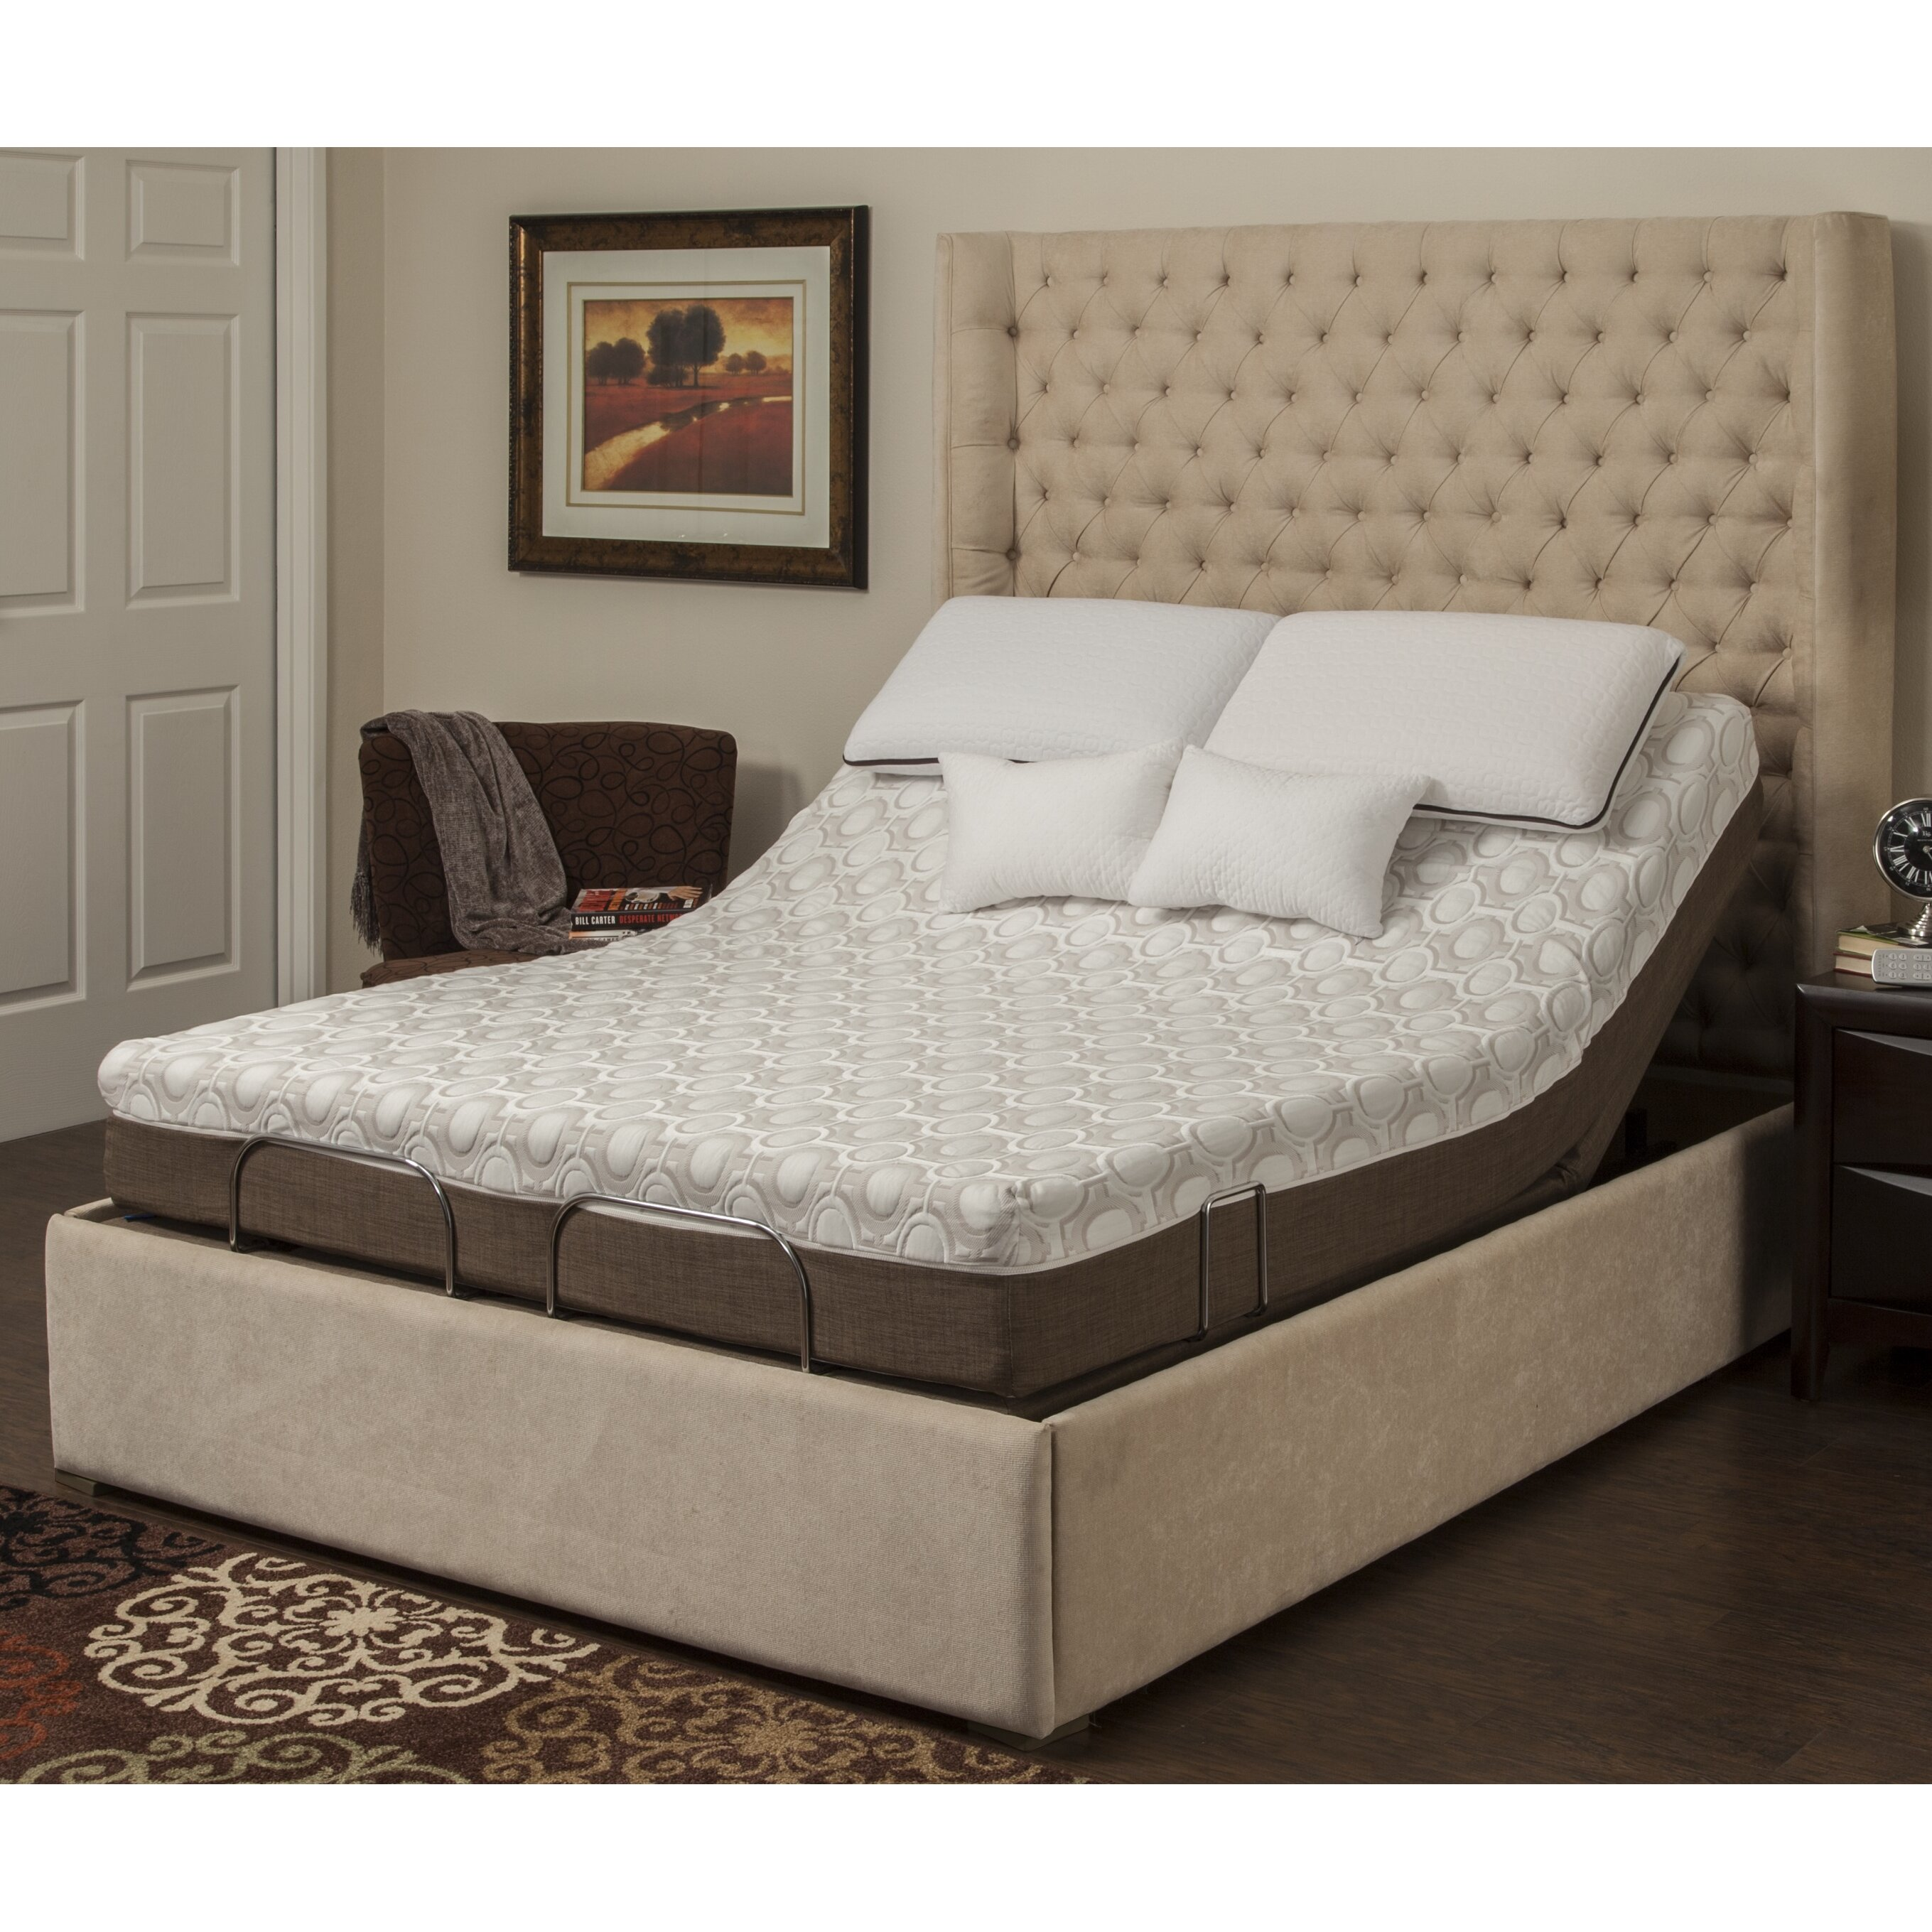 Adjustable Bed And Mattress Reviews : Blissfulnights dahlia quot memory foam mattress with m